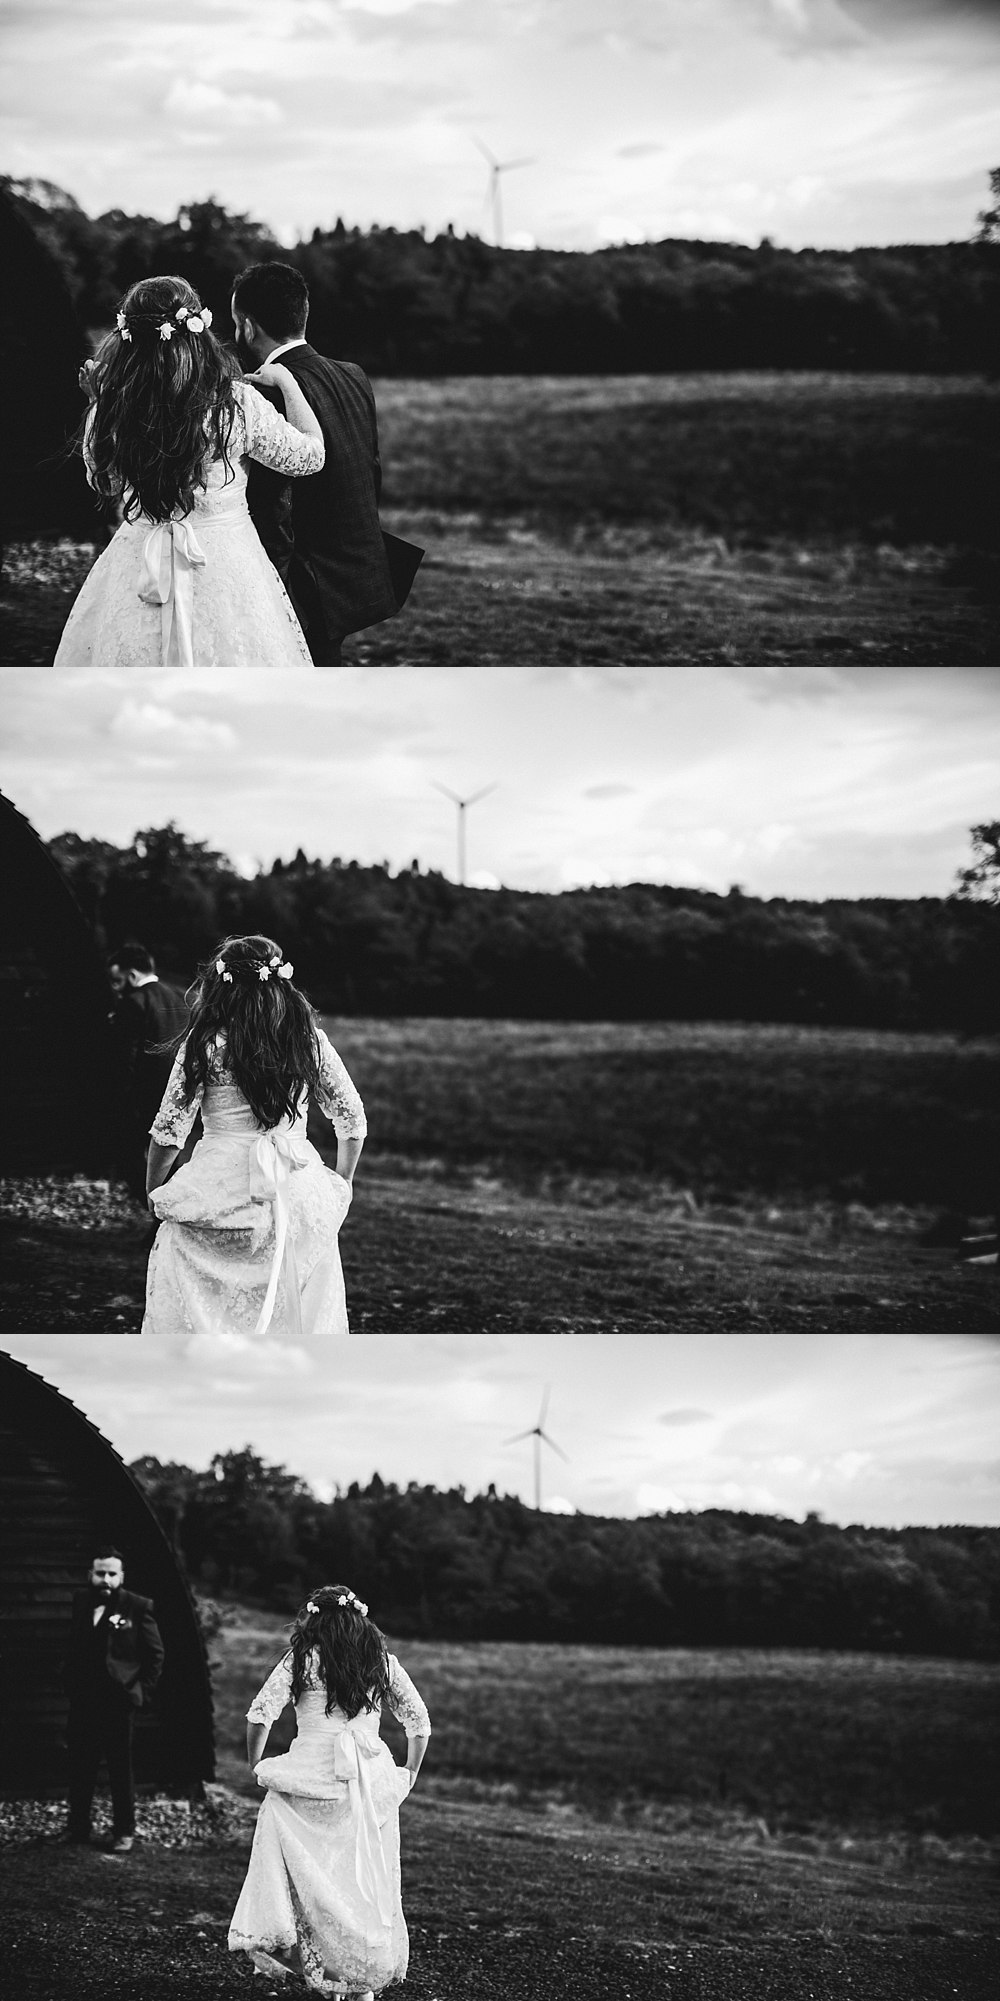 natural romantic fun wedding Eden Leisure Village Scotland highlights 27-16.jpg